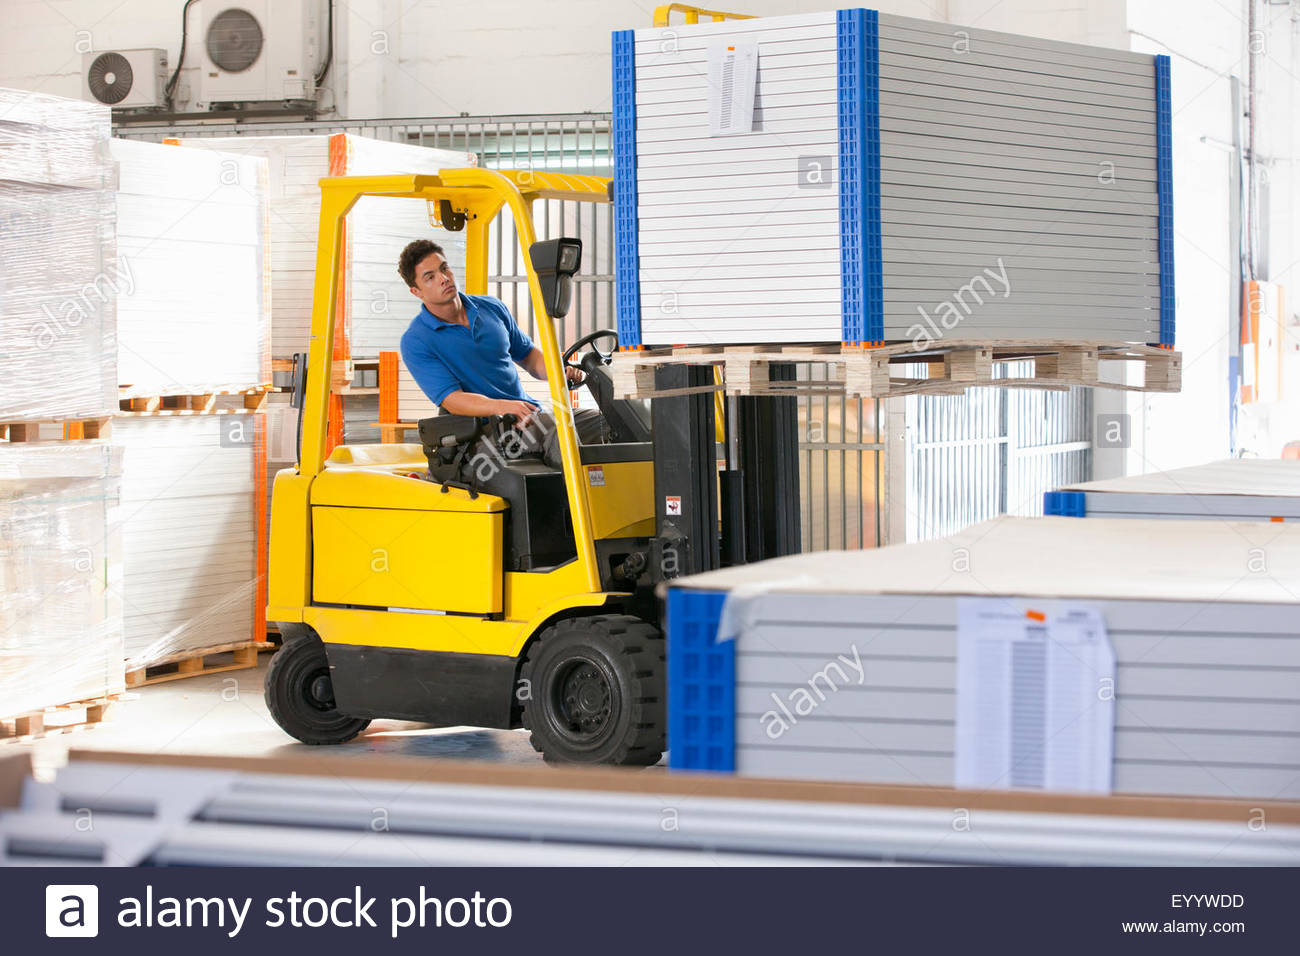 Forklift truck driver stacking solar panels in factory warehouse - Stock Image